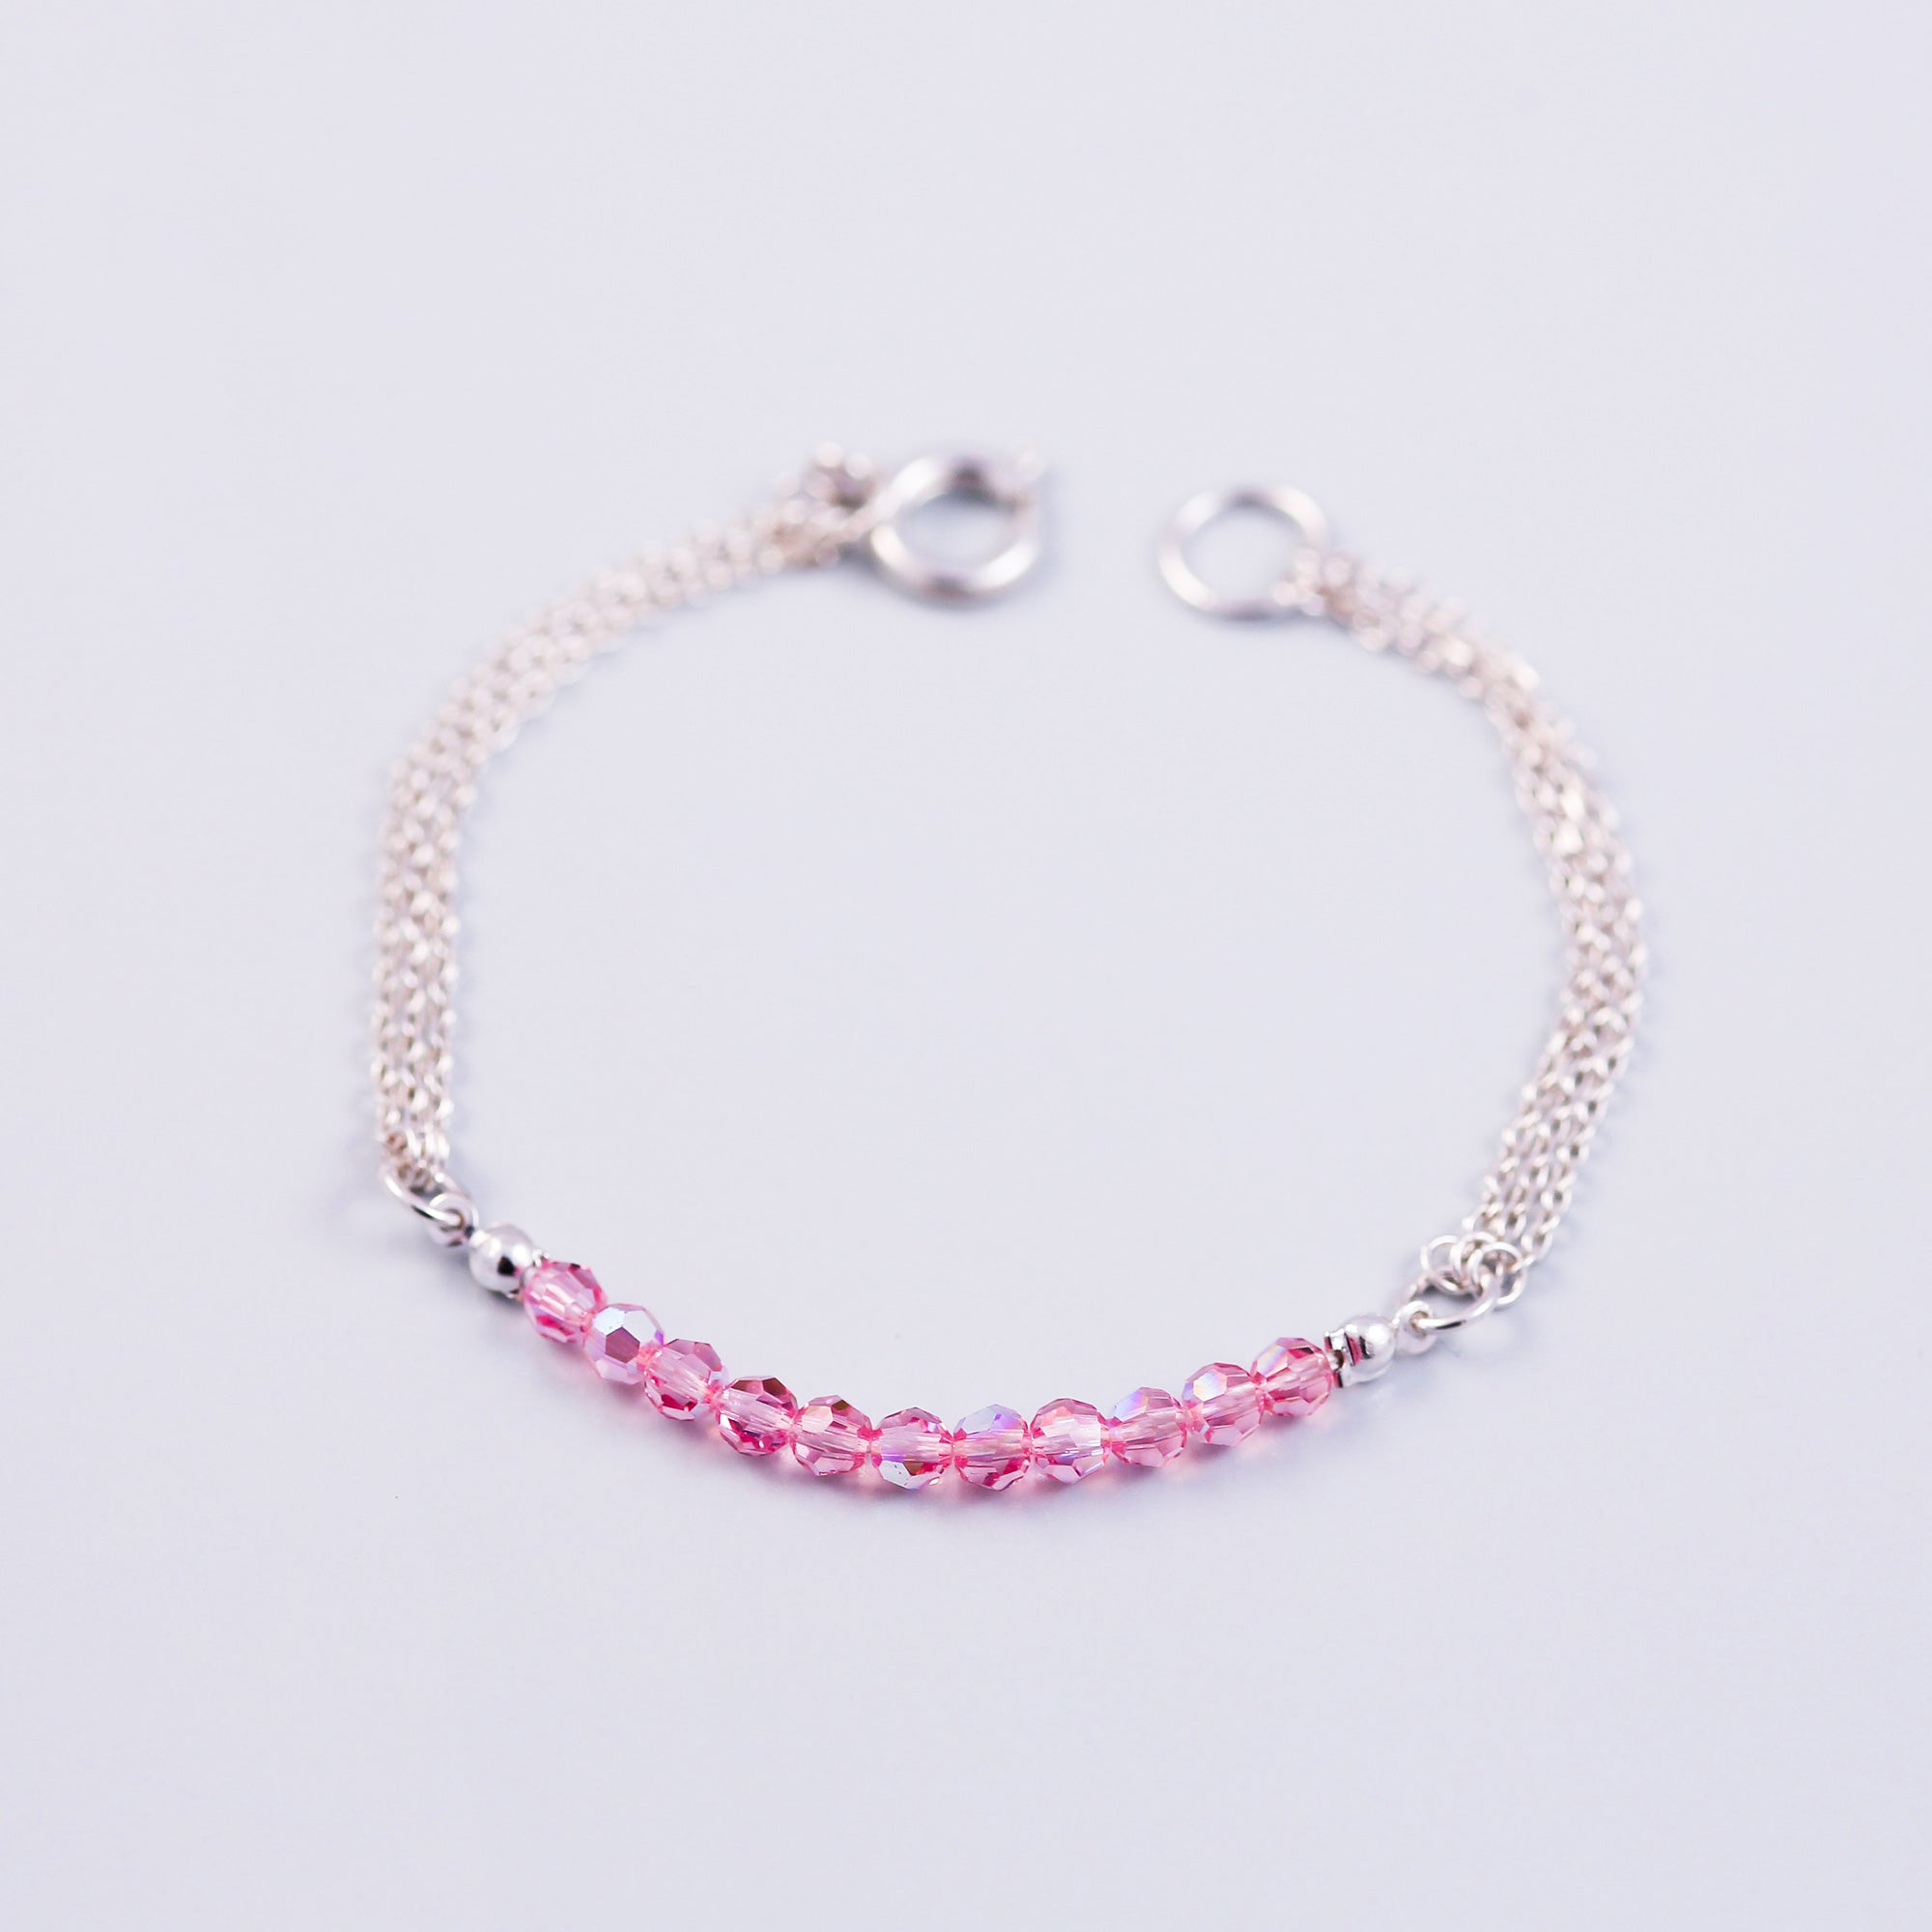 Beaded Bracelet | Cute Friendship Bracelets | Friendship Jewellery | Silver & Crystal Pink